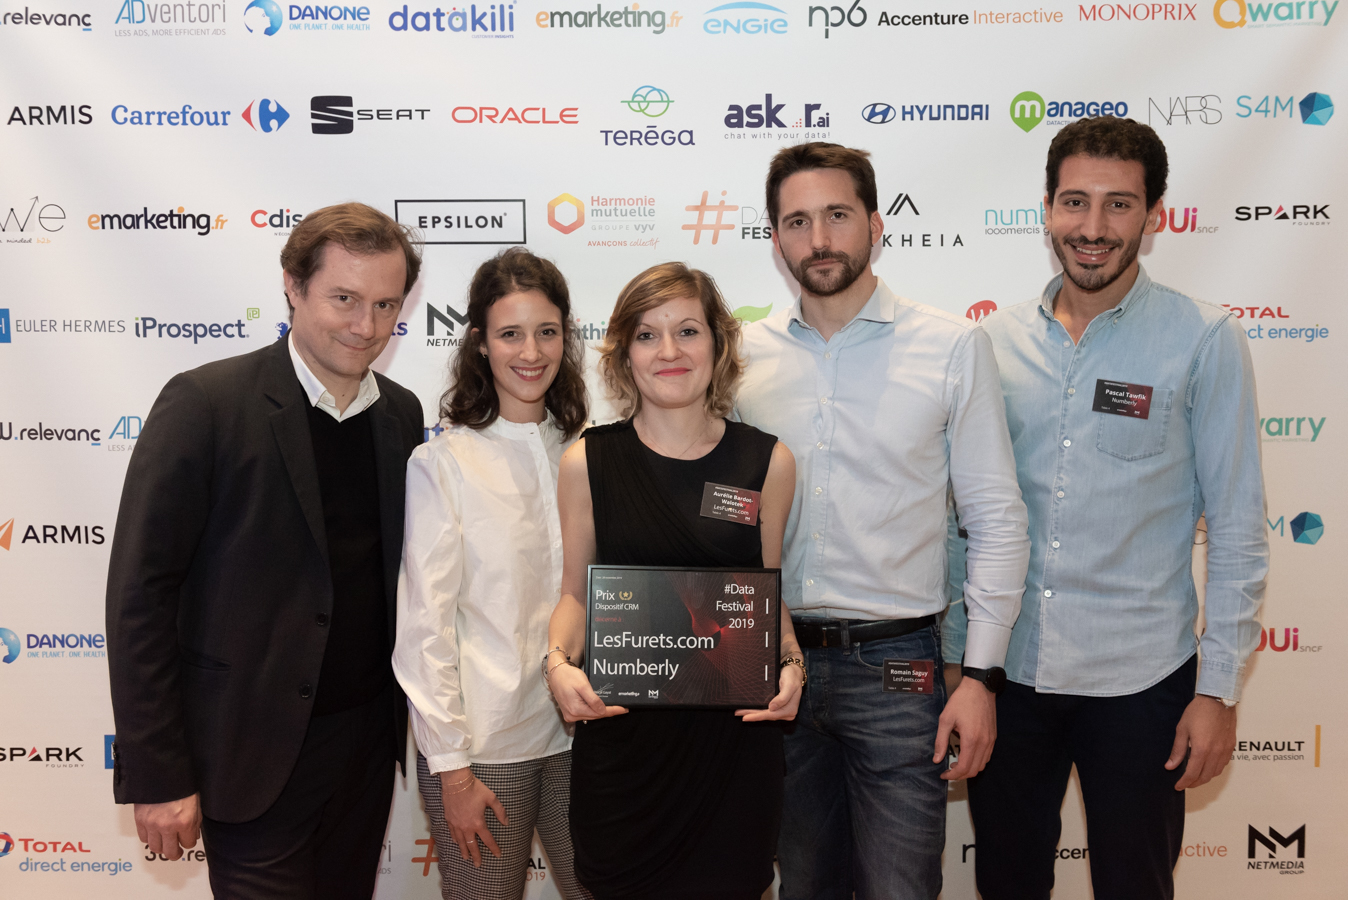 Numberly and LesFurets teams at the awards ceremony